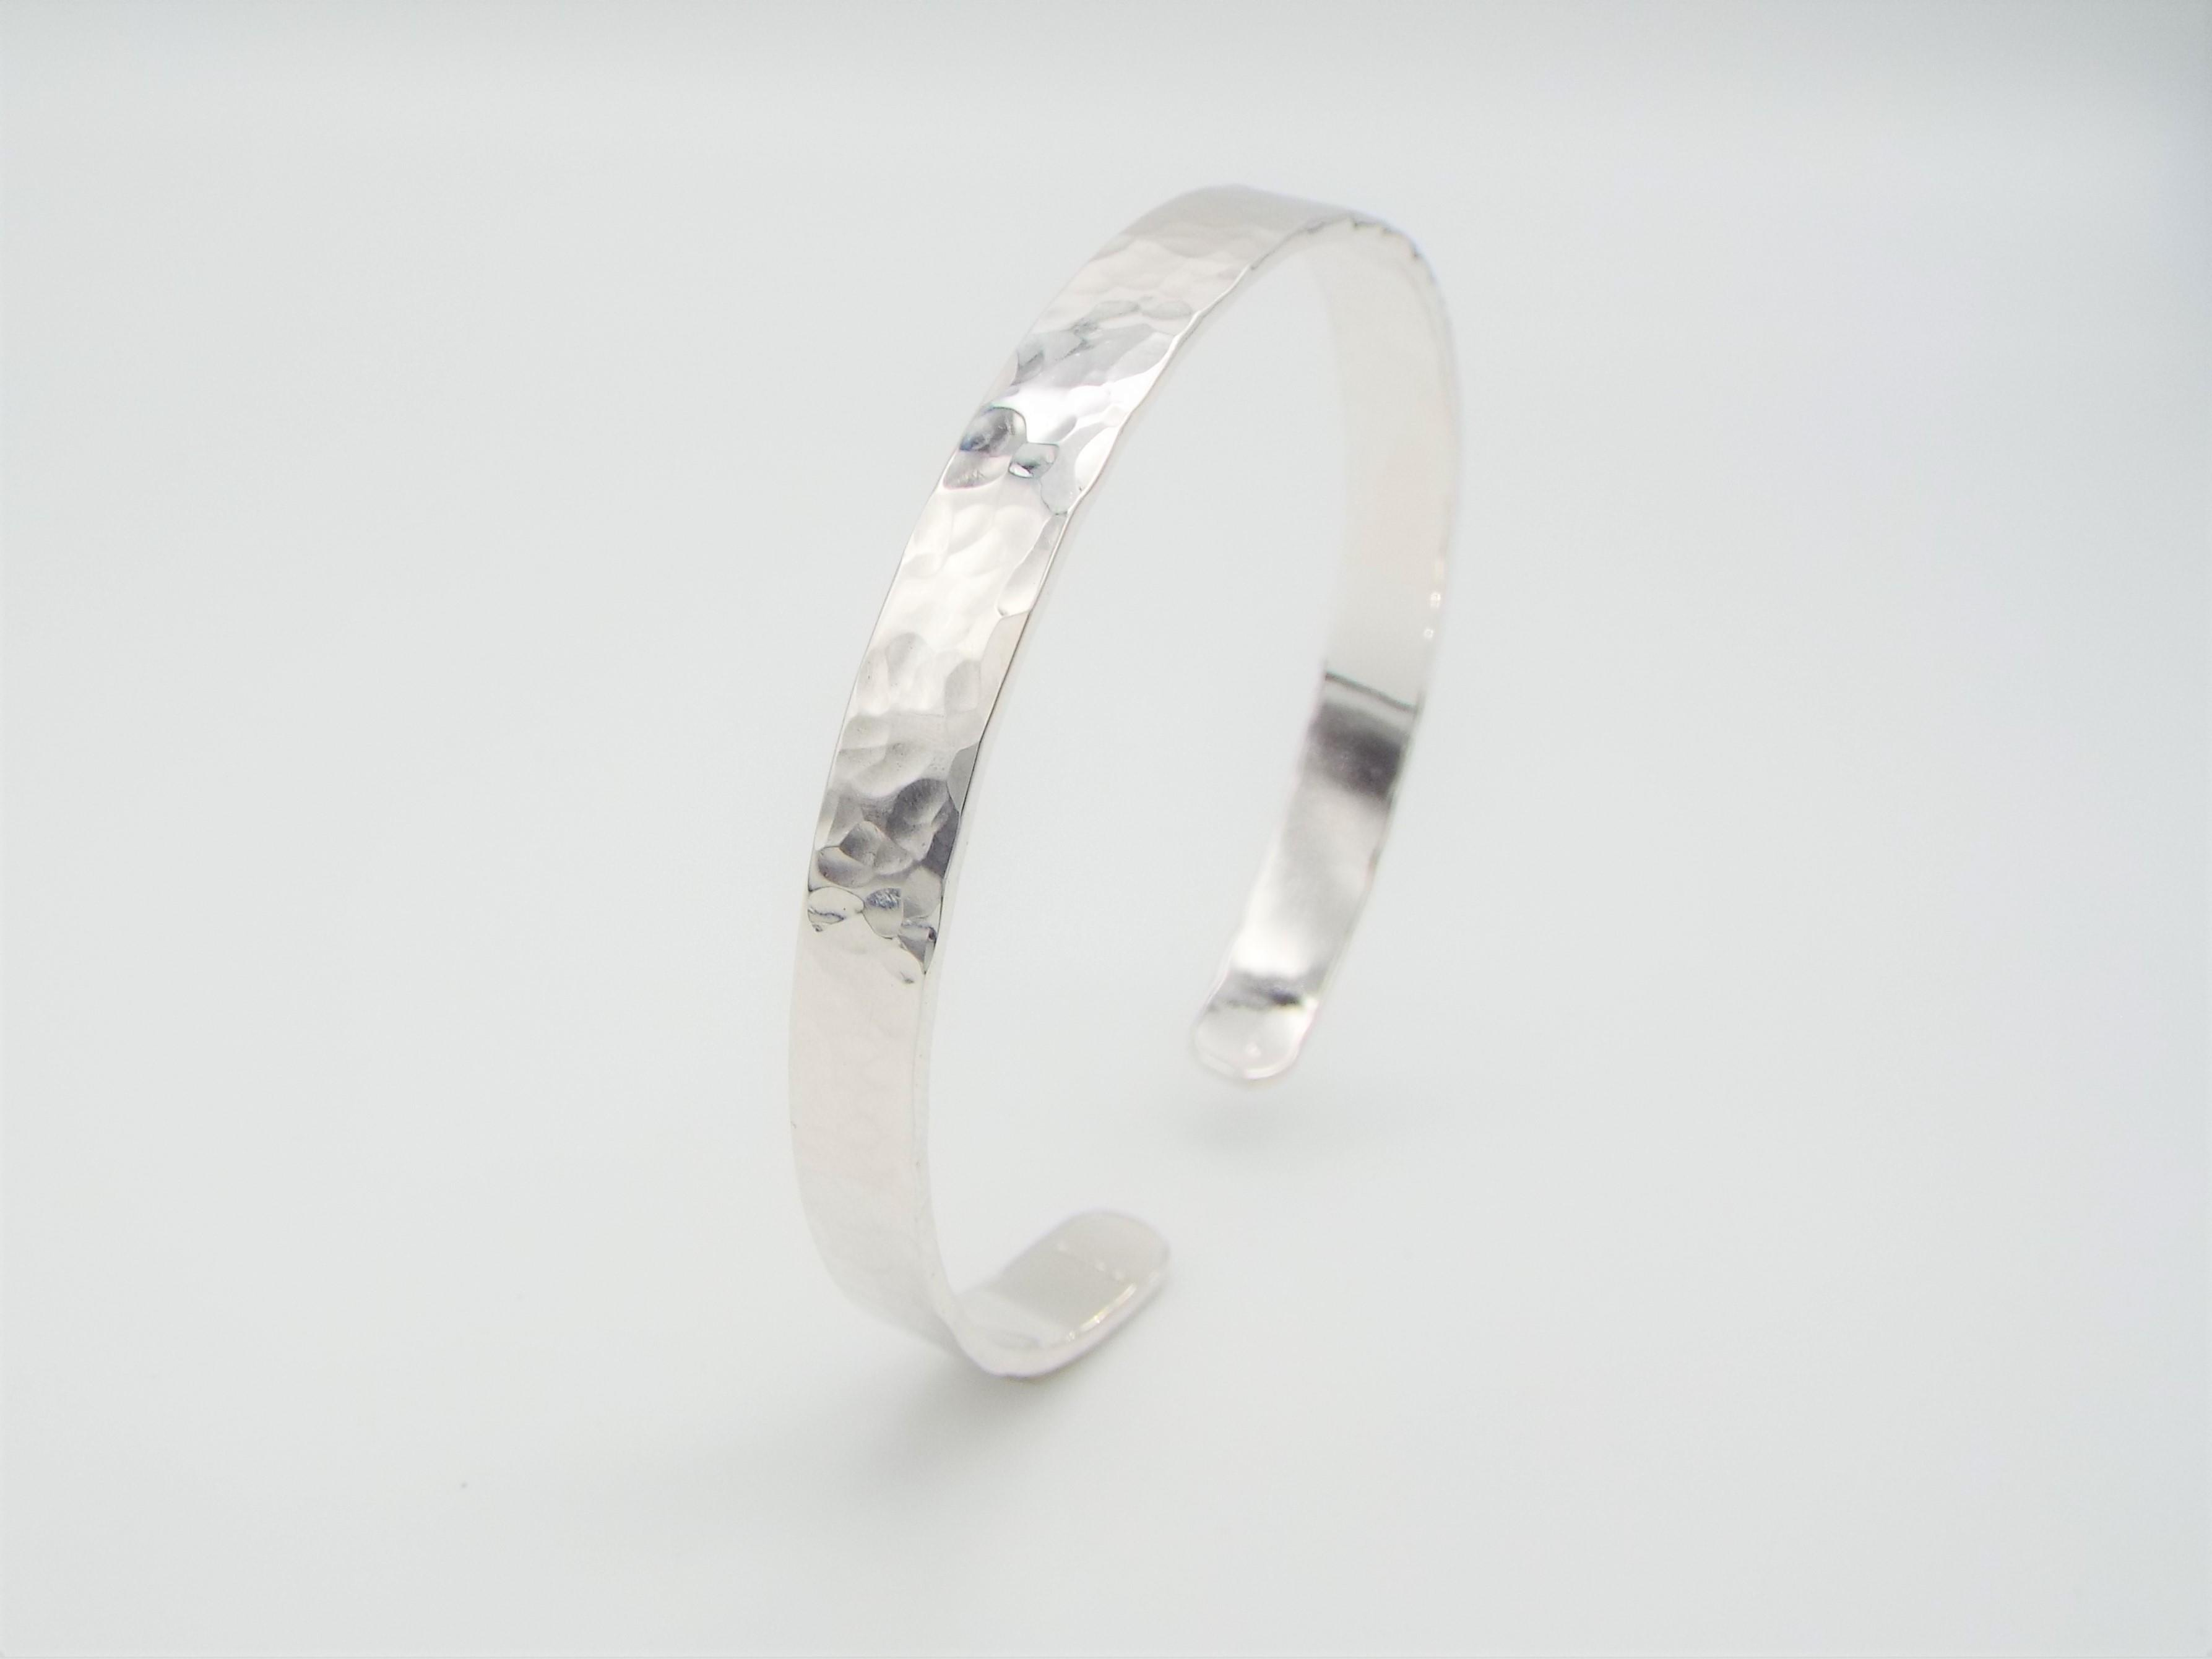 Silver Cuff Bracelet with a hammered and polished finish